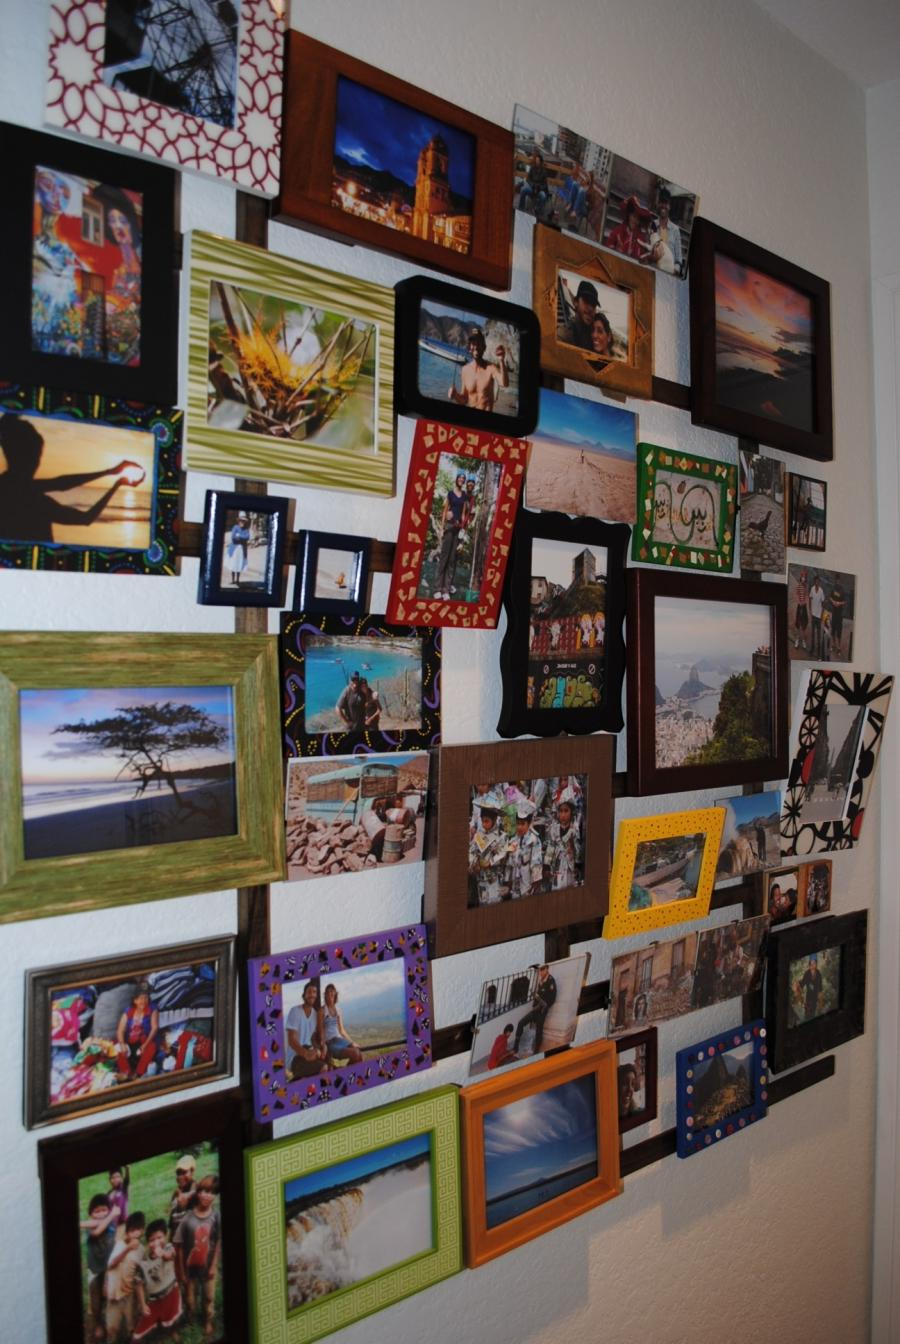 Our hallway photo collage